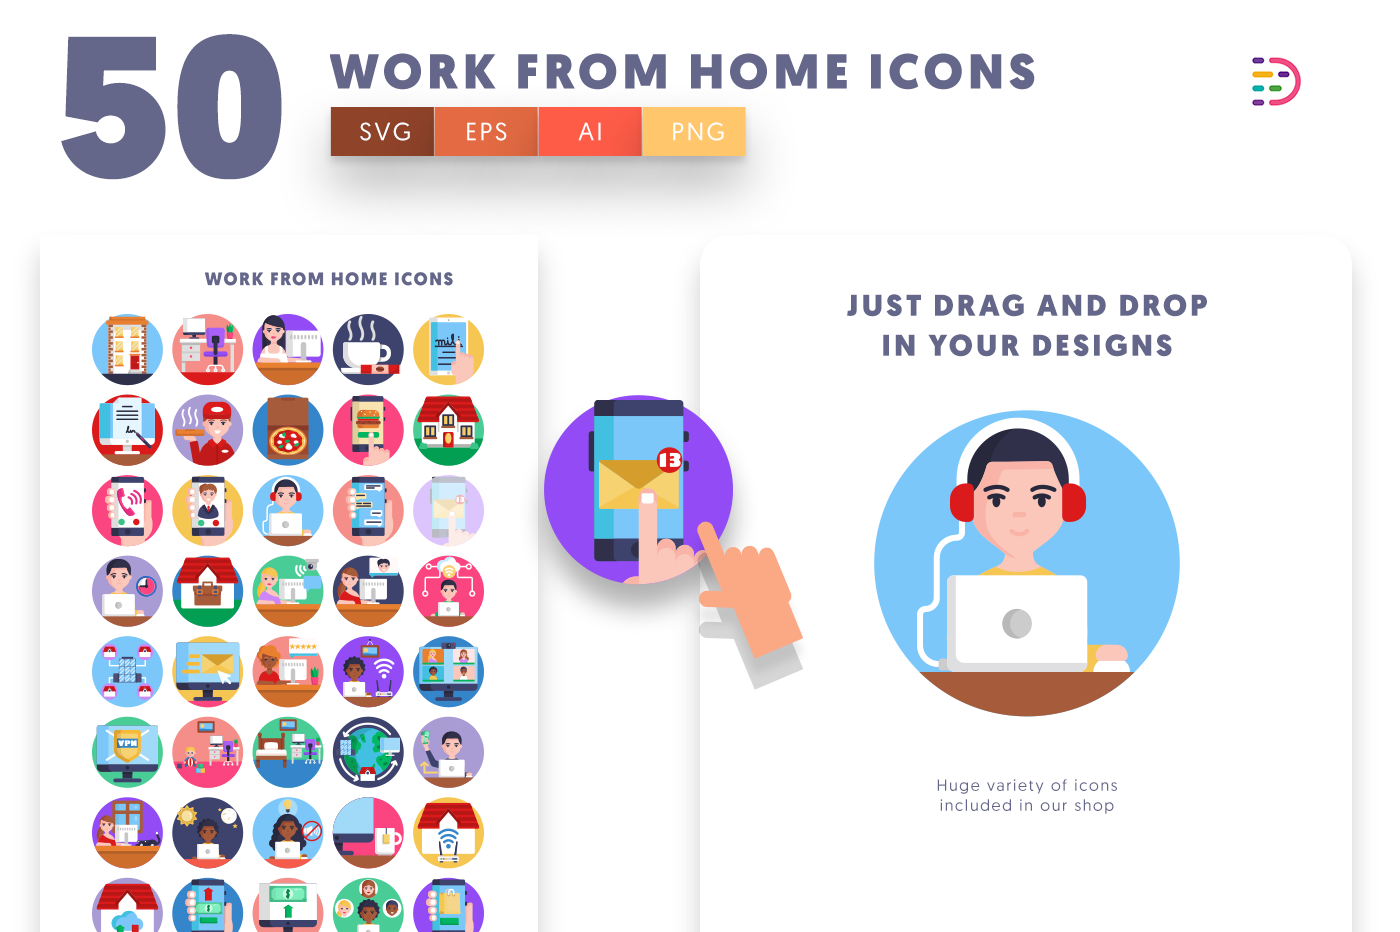 Drag and drop vector 50 Work from Home Icons